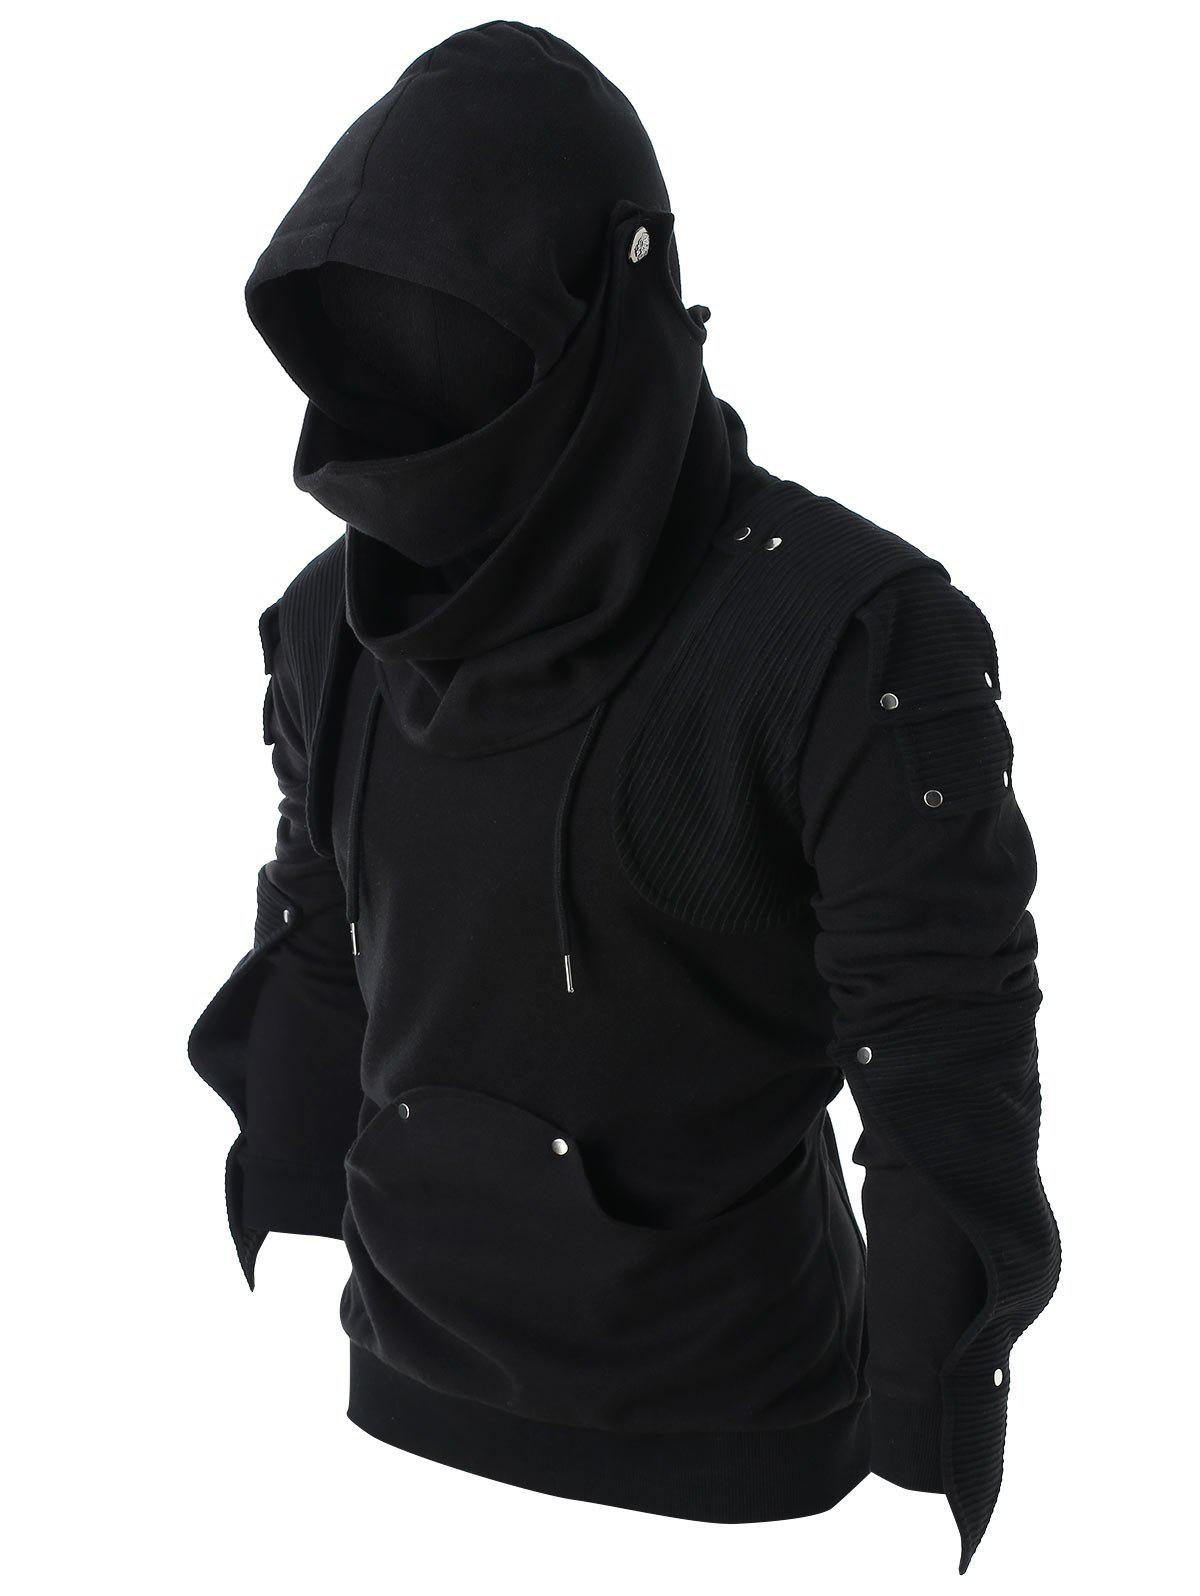 Rivet Long Sleeve Drawstring Hoodie from Rosegal